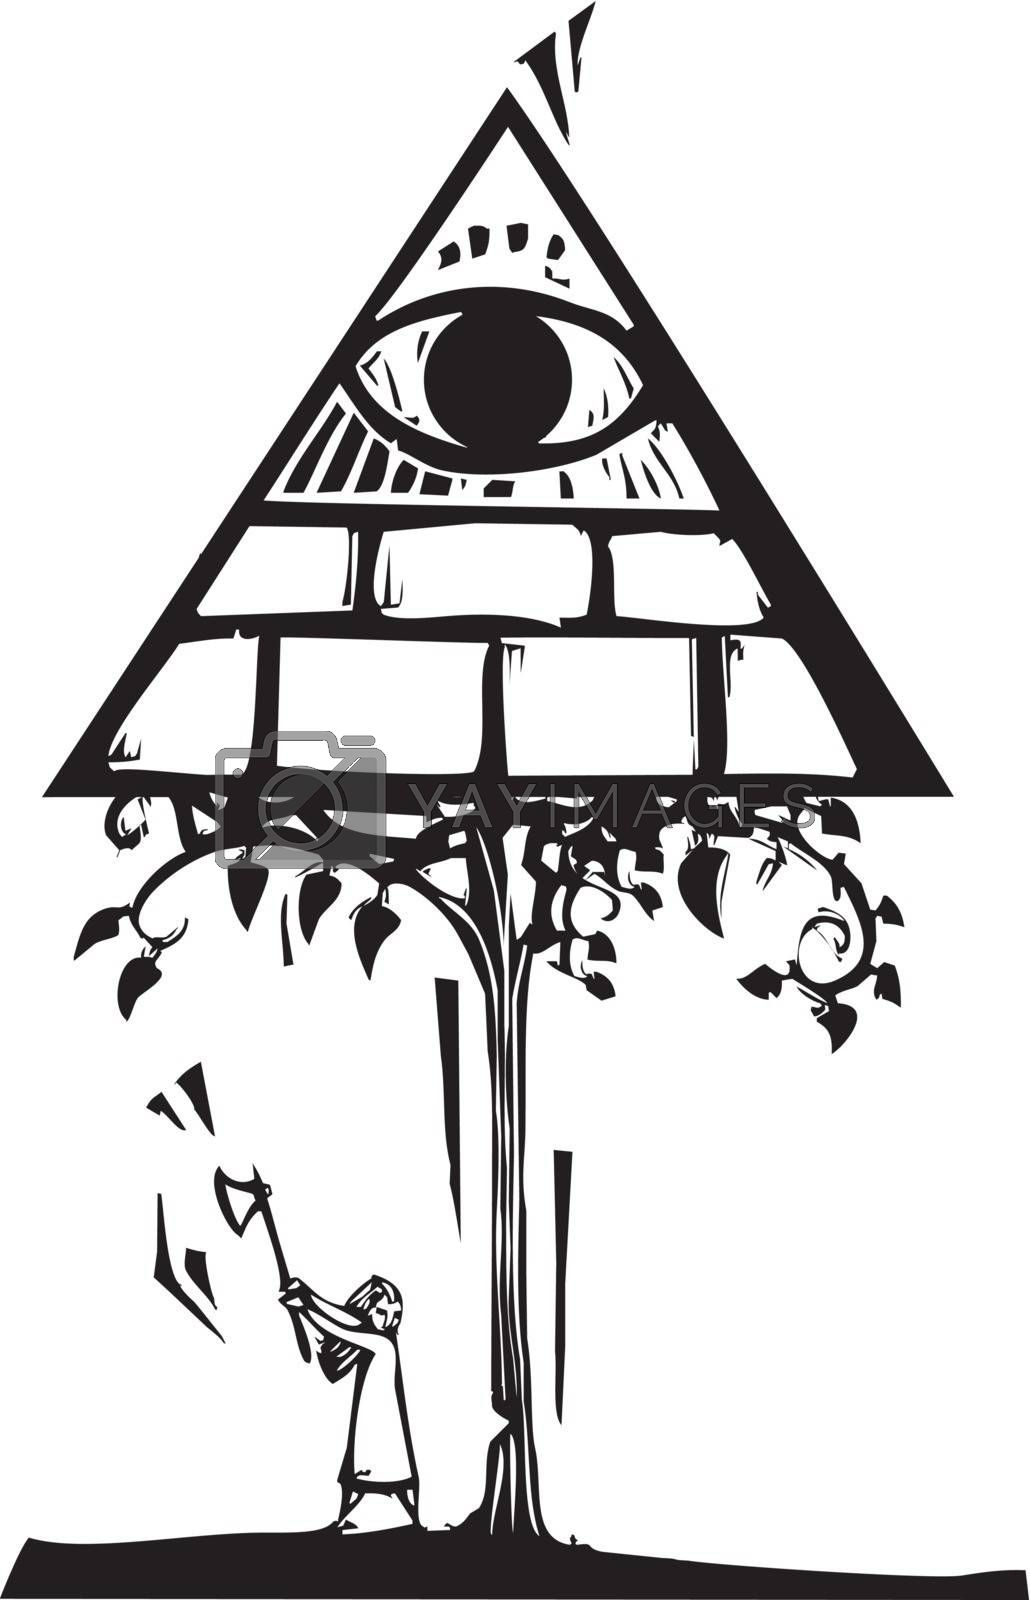 Woodcut style image of a girl chopping down a tree with the Masonic Pyramid.